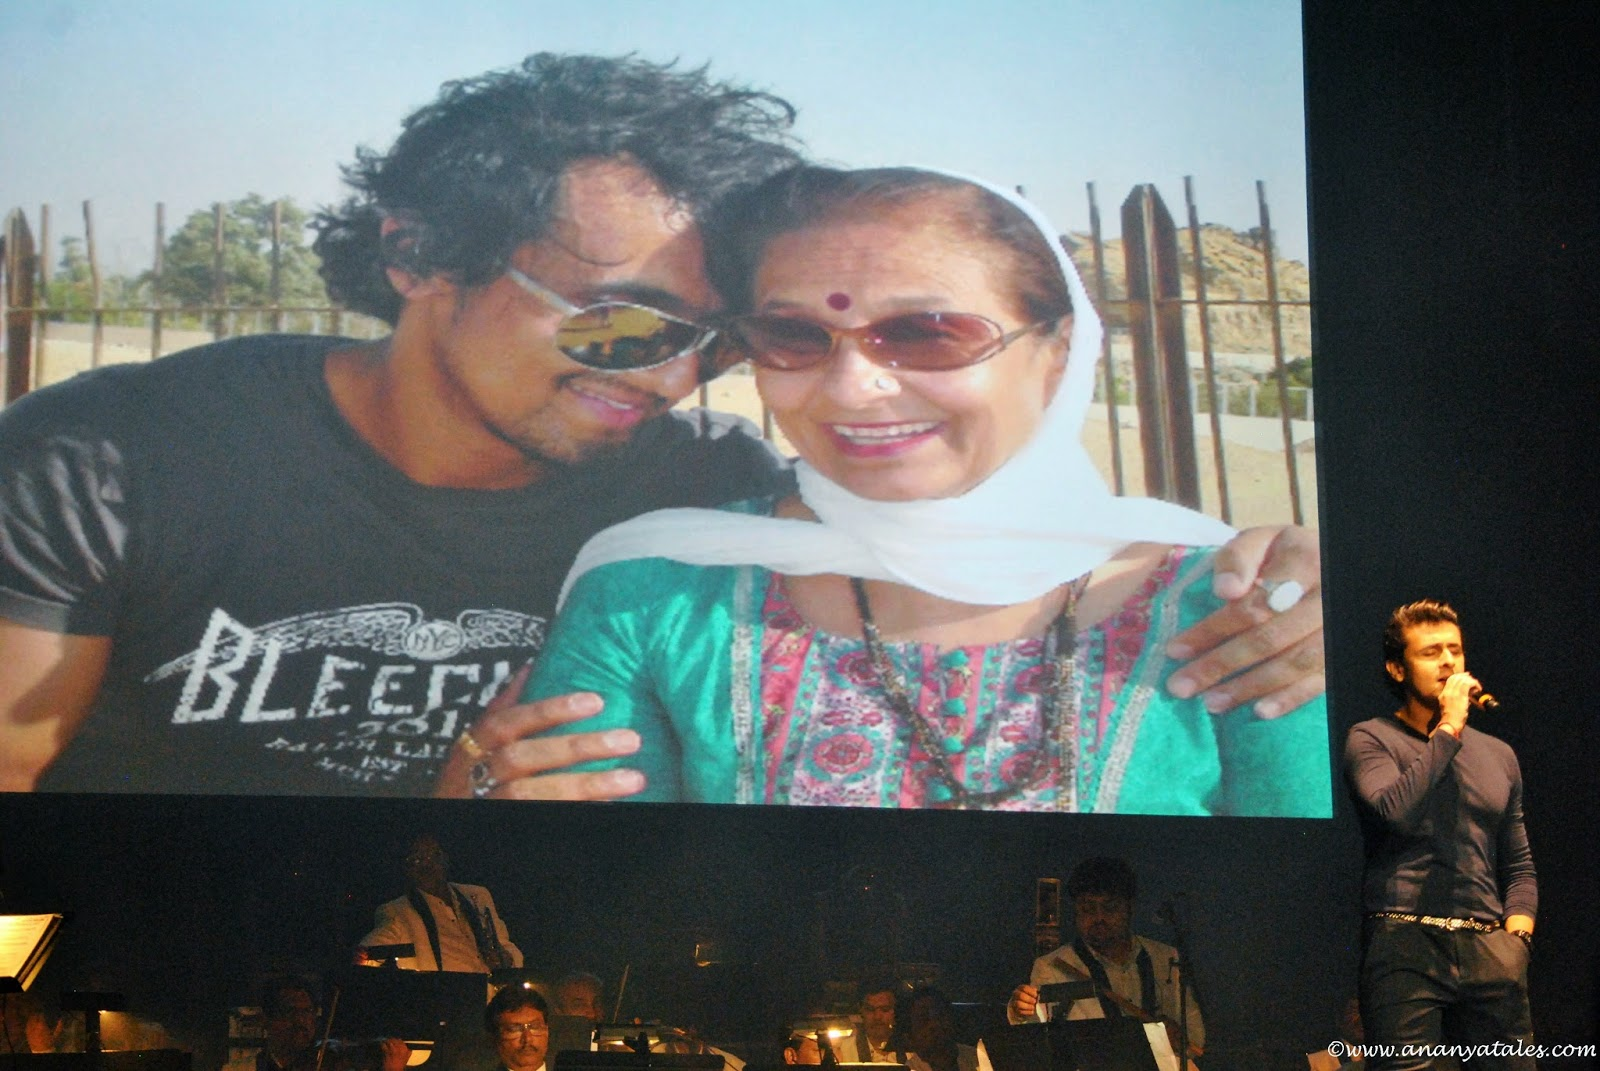 Sonu Nigams mother Mrs. Shobha Nigam , close to my soul, sonu nigam live concert in usa, famous indian singer